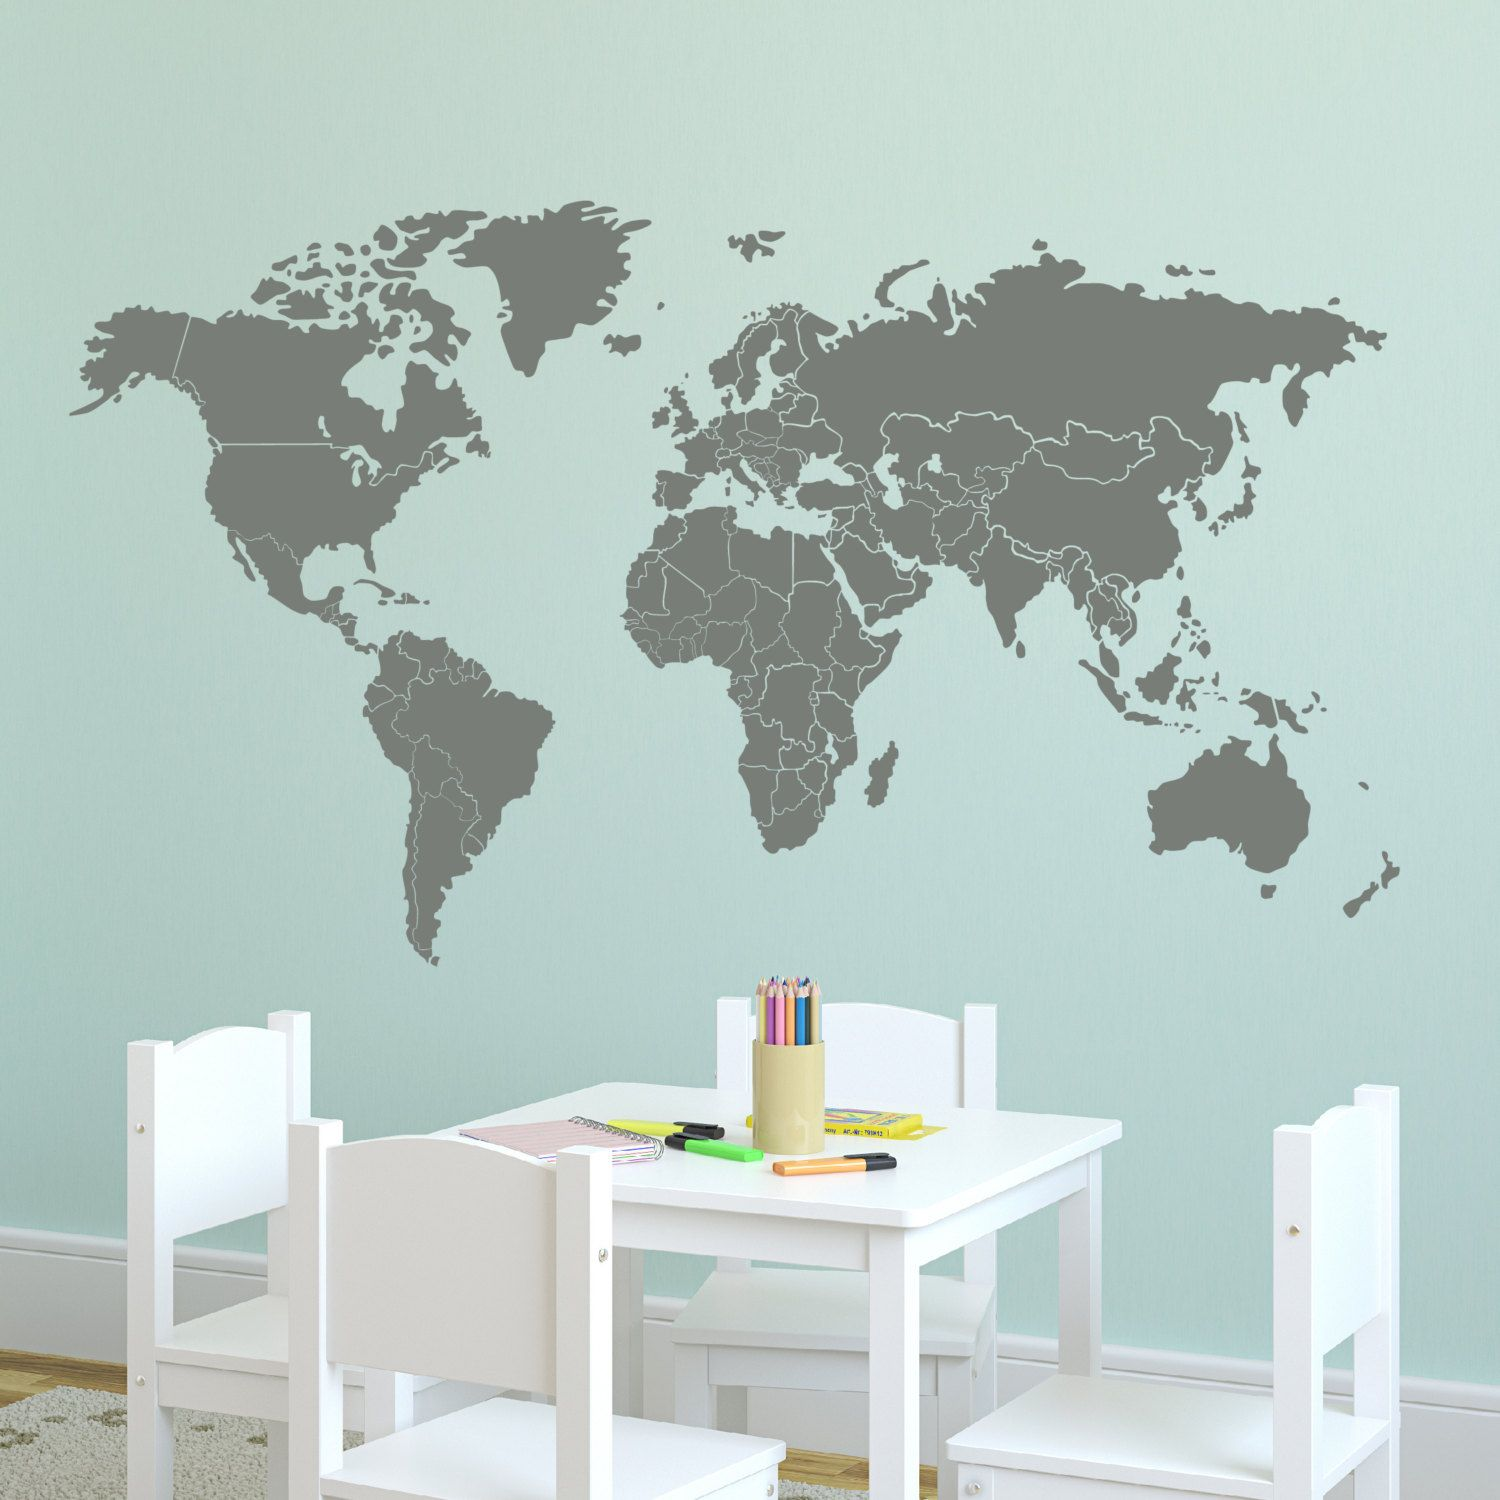 Wall decal 72w large world map with countries borders 8900 via wall decal 72w large world map with countries borders gumiabroncs Gallery